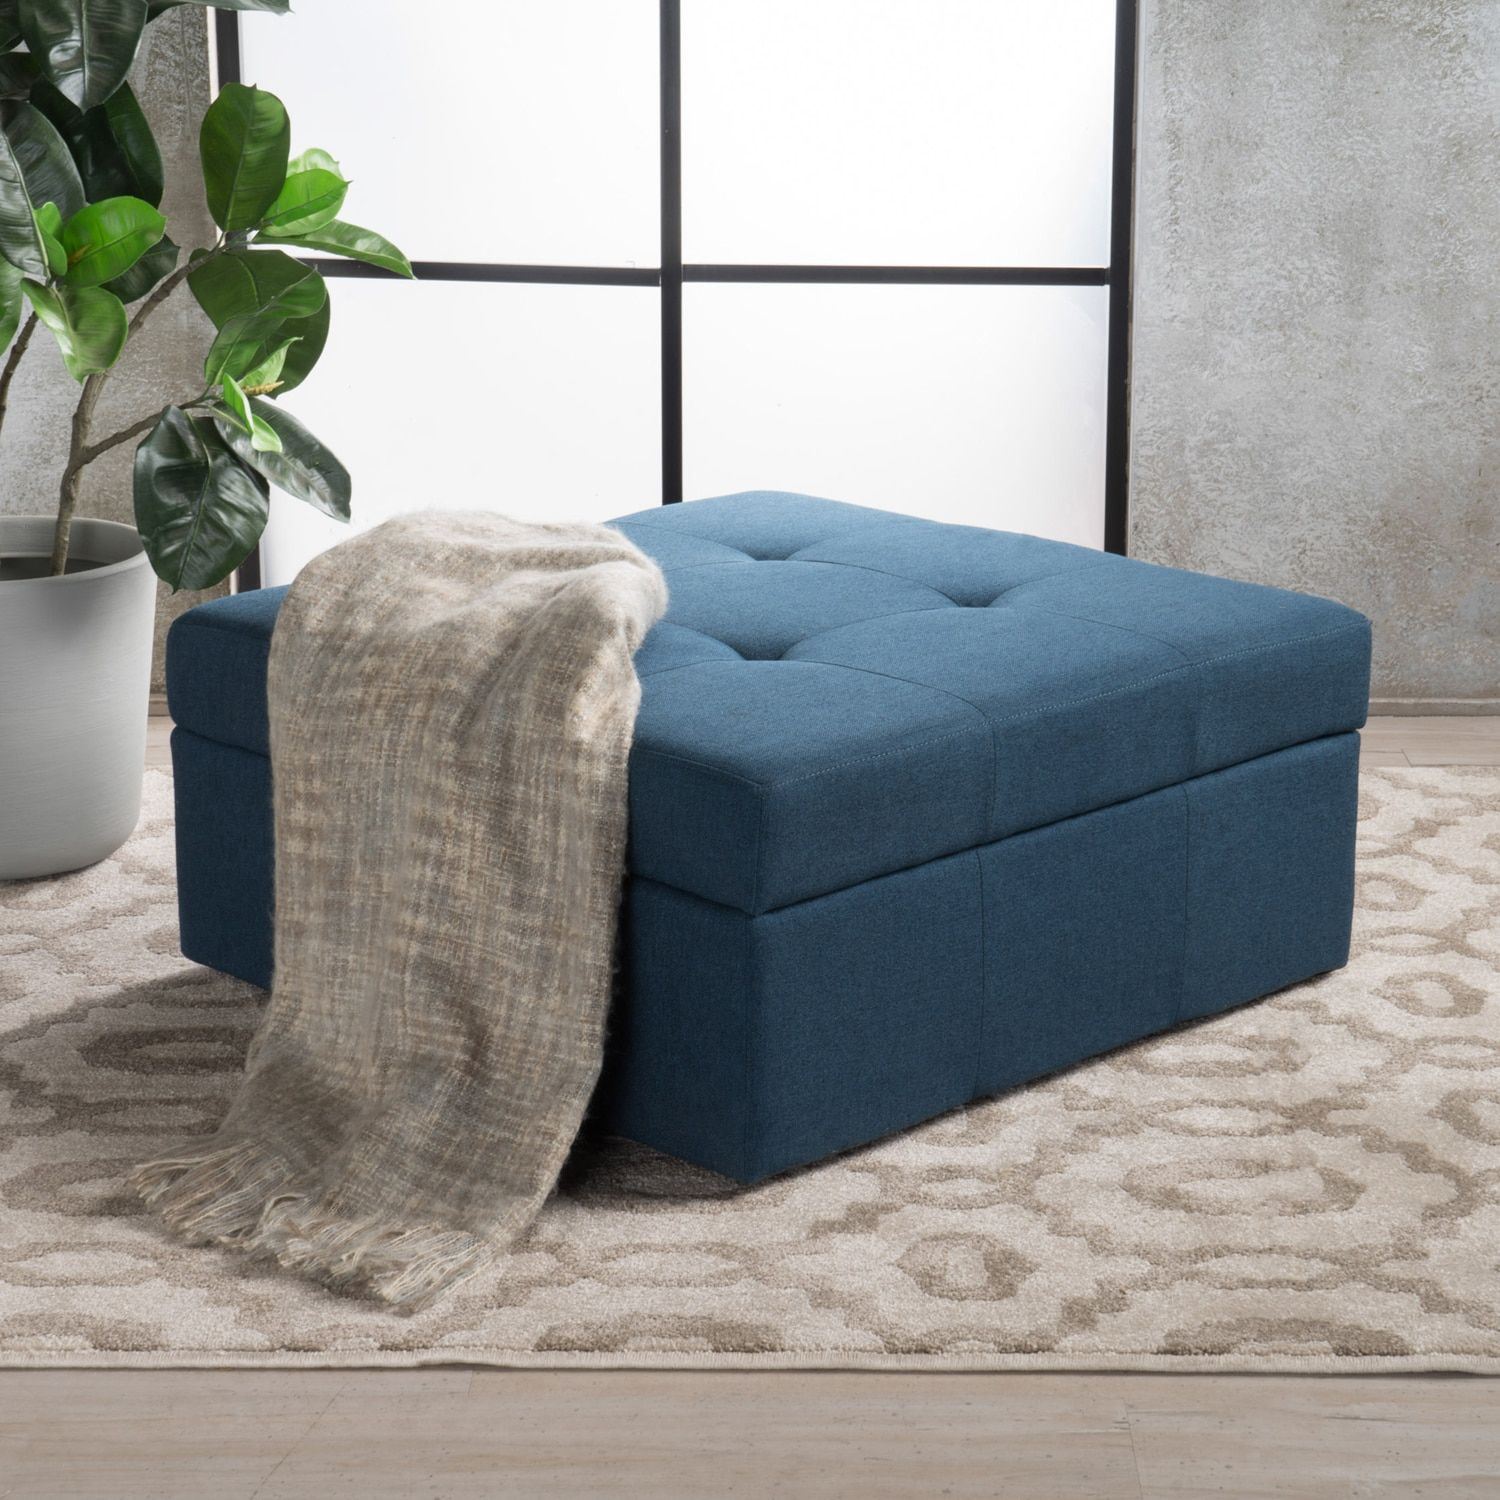 Pleasing Canoga Navy Blue Fabric Storage Ottoman Living Room Caraccident5 Cool Chair Designs And Ideas Caraccident5Info